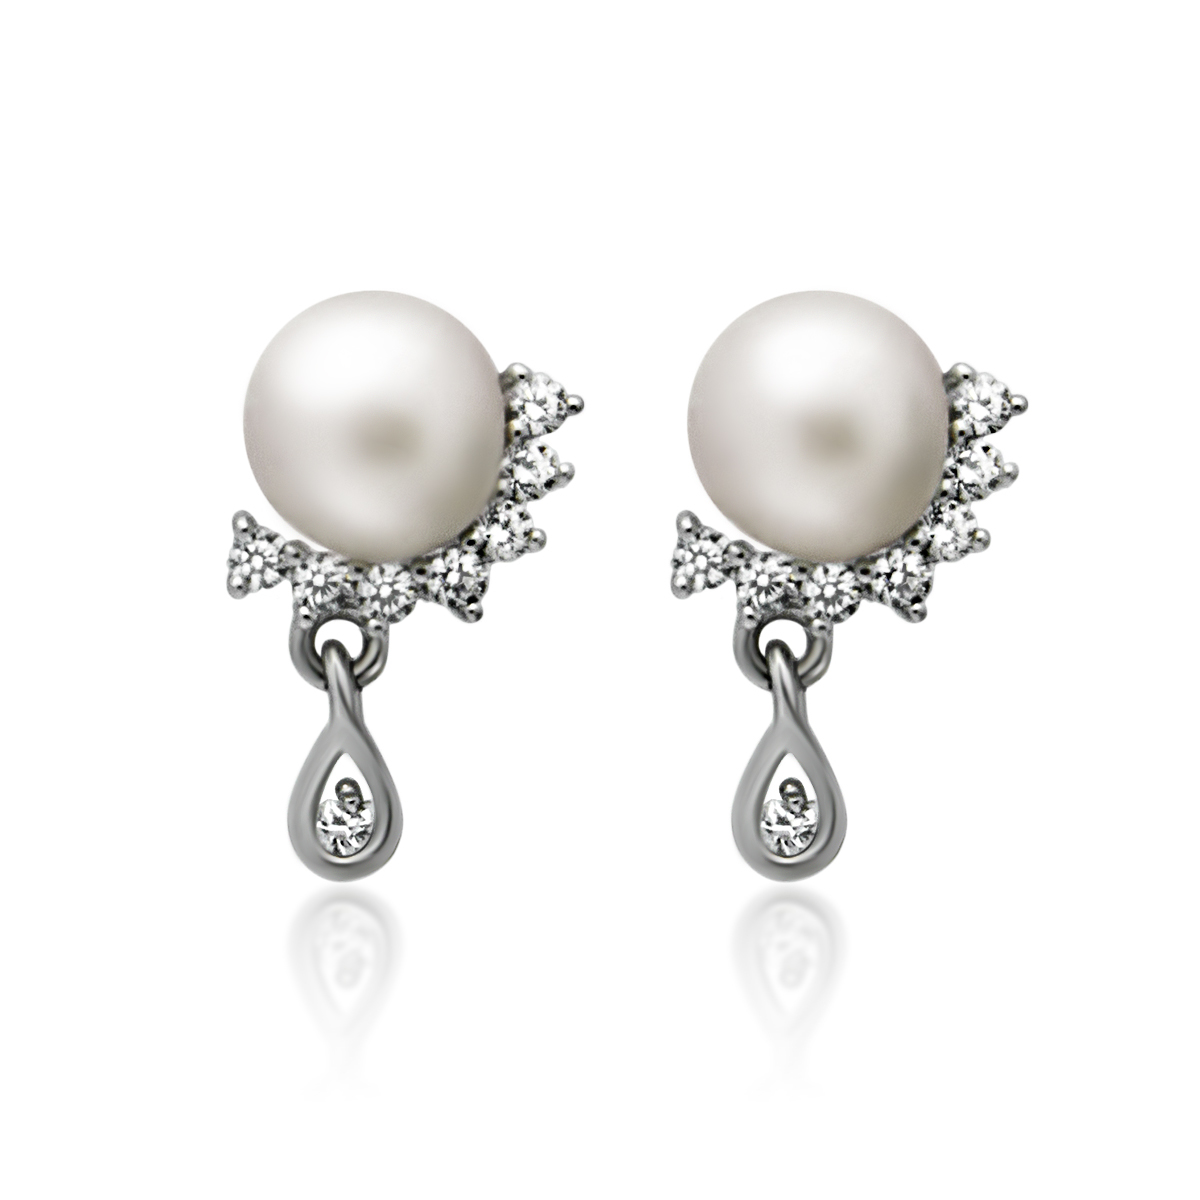 925 Sterling Silver Earrings, Teardrop Earrings Swing Pearl Earrings, Pearl  Ball Earrings, Classic